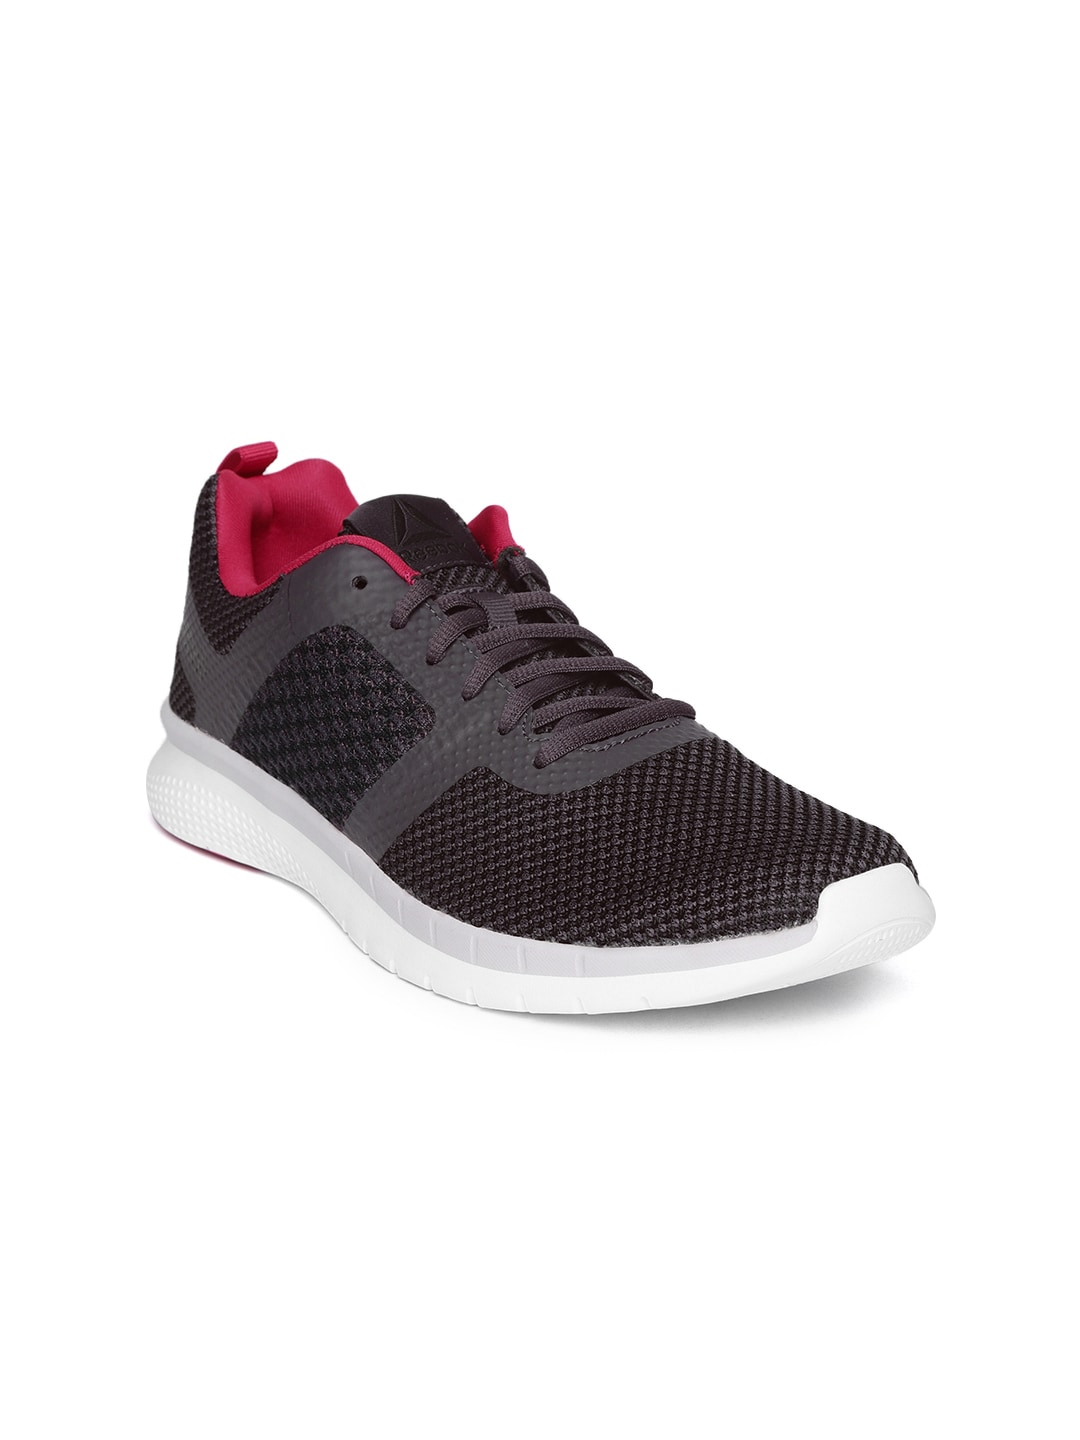 dda48ac142e Reebok Sports Shoes - Buy Reebok Sports Shoes in India